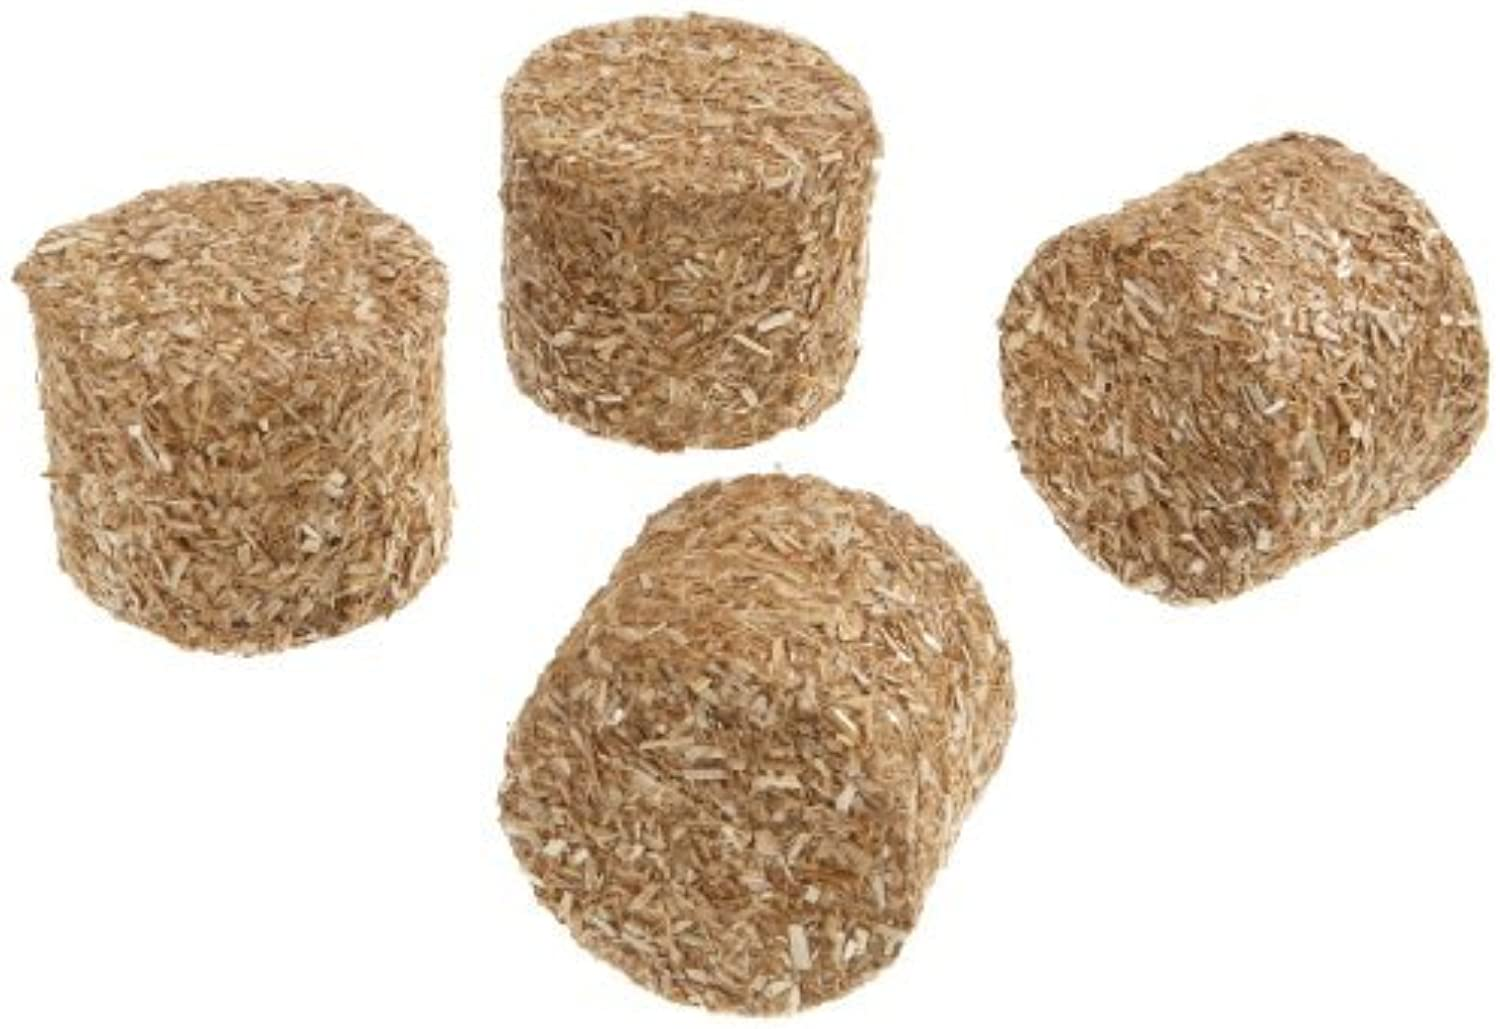 Van Manen 610703 Accessories  Straw Bales (Set of 4) by Van Manen